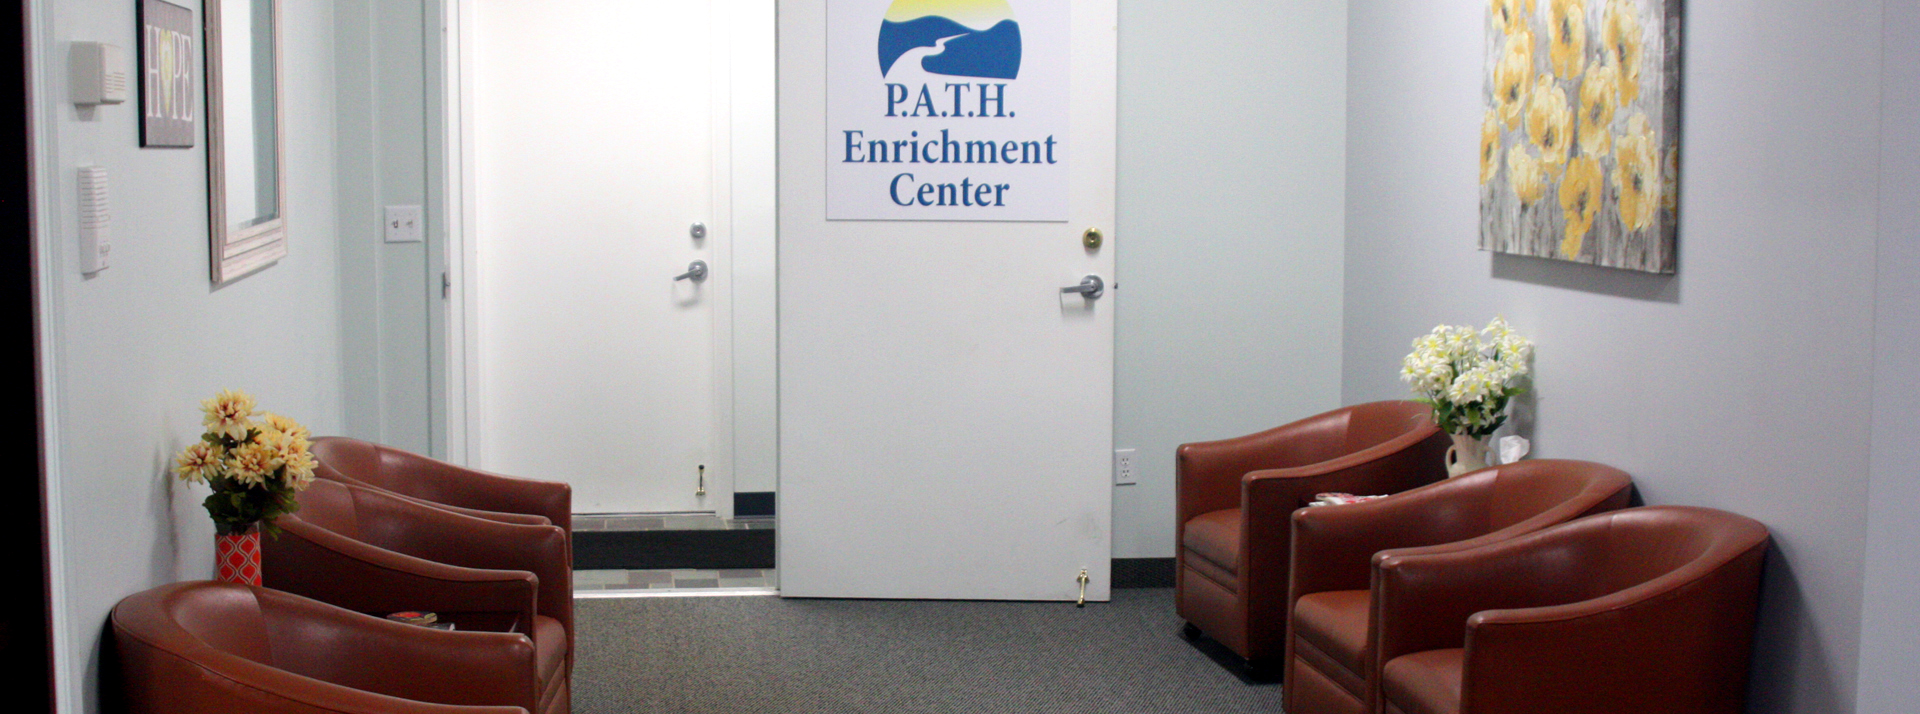 PATH Enrichment Center